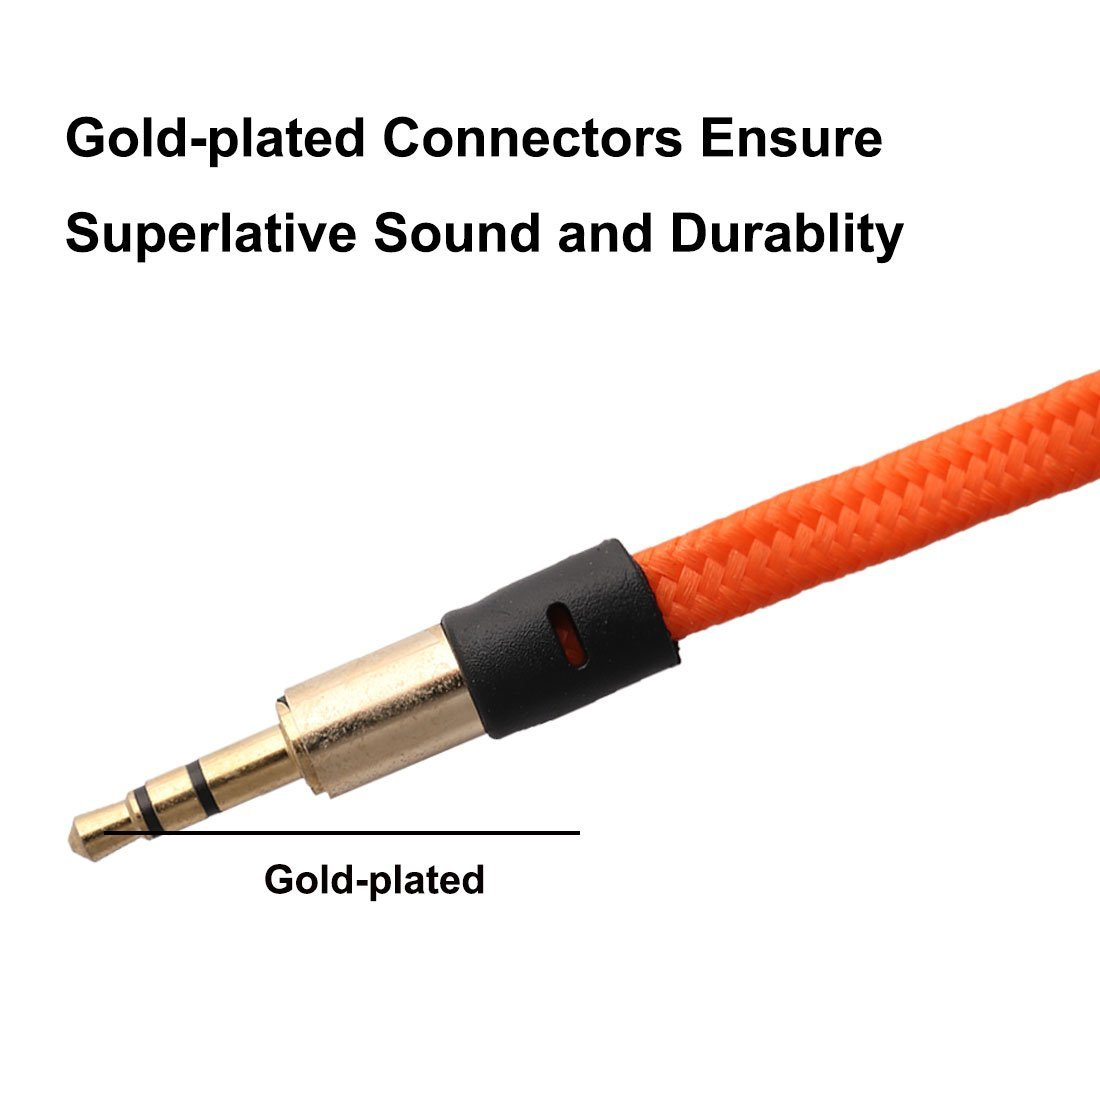 Amazon.com: eDealMax Nylon reproductores de MP3 3.5mm Macho a la cuerda del Cable de extensión Audio Masculino Plana Larga del 1M Naranja: Electronics